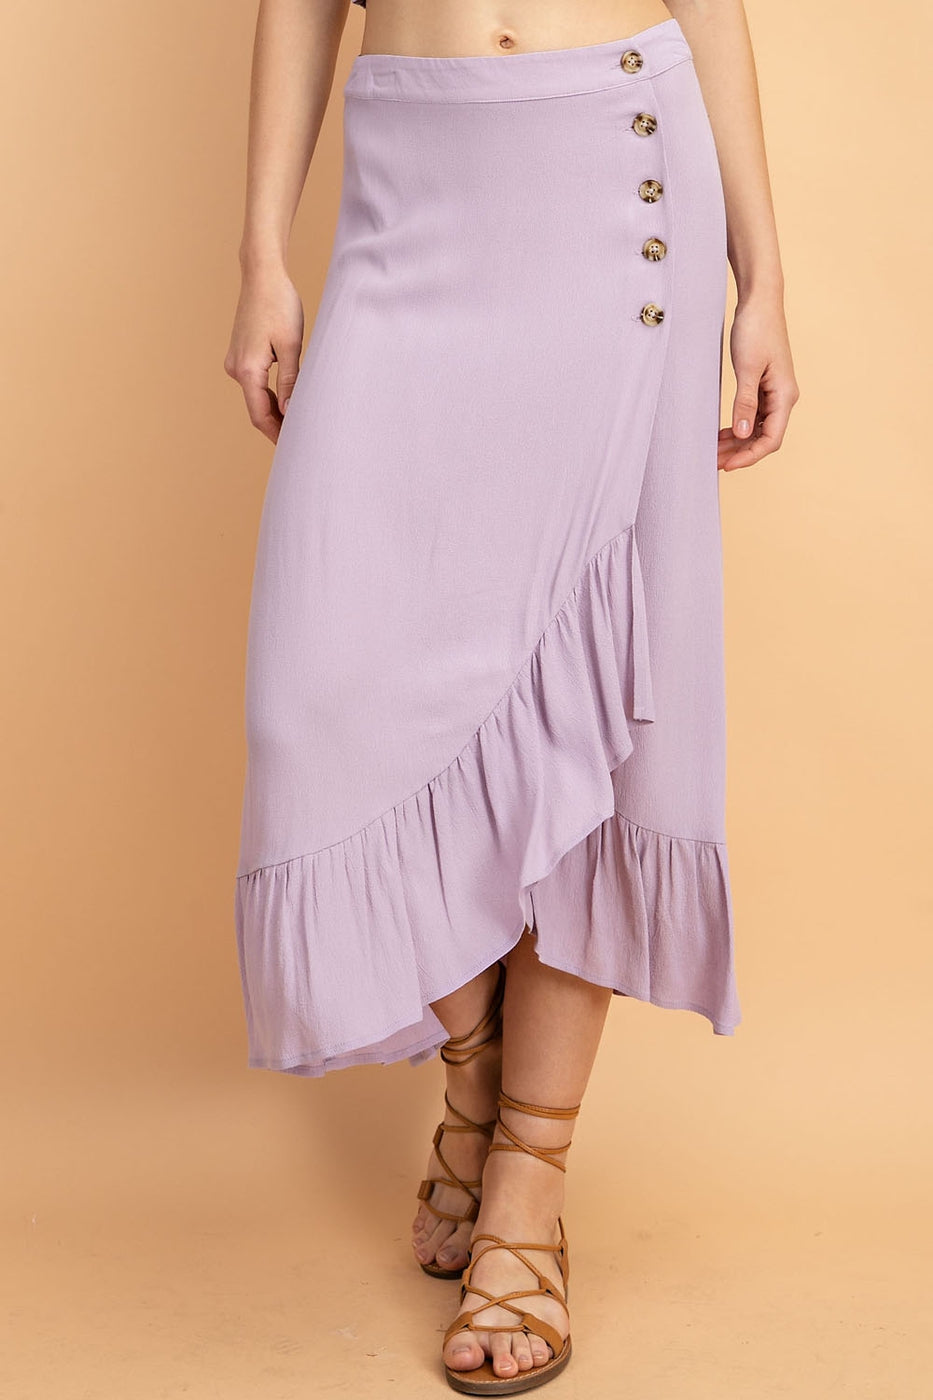 High Waisted Midi Wrap Skirt With Button And Ruffle Trim Detail - Siin Bees